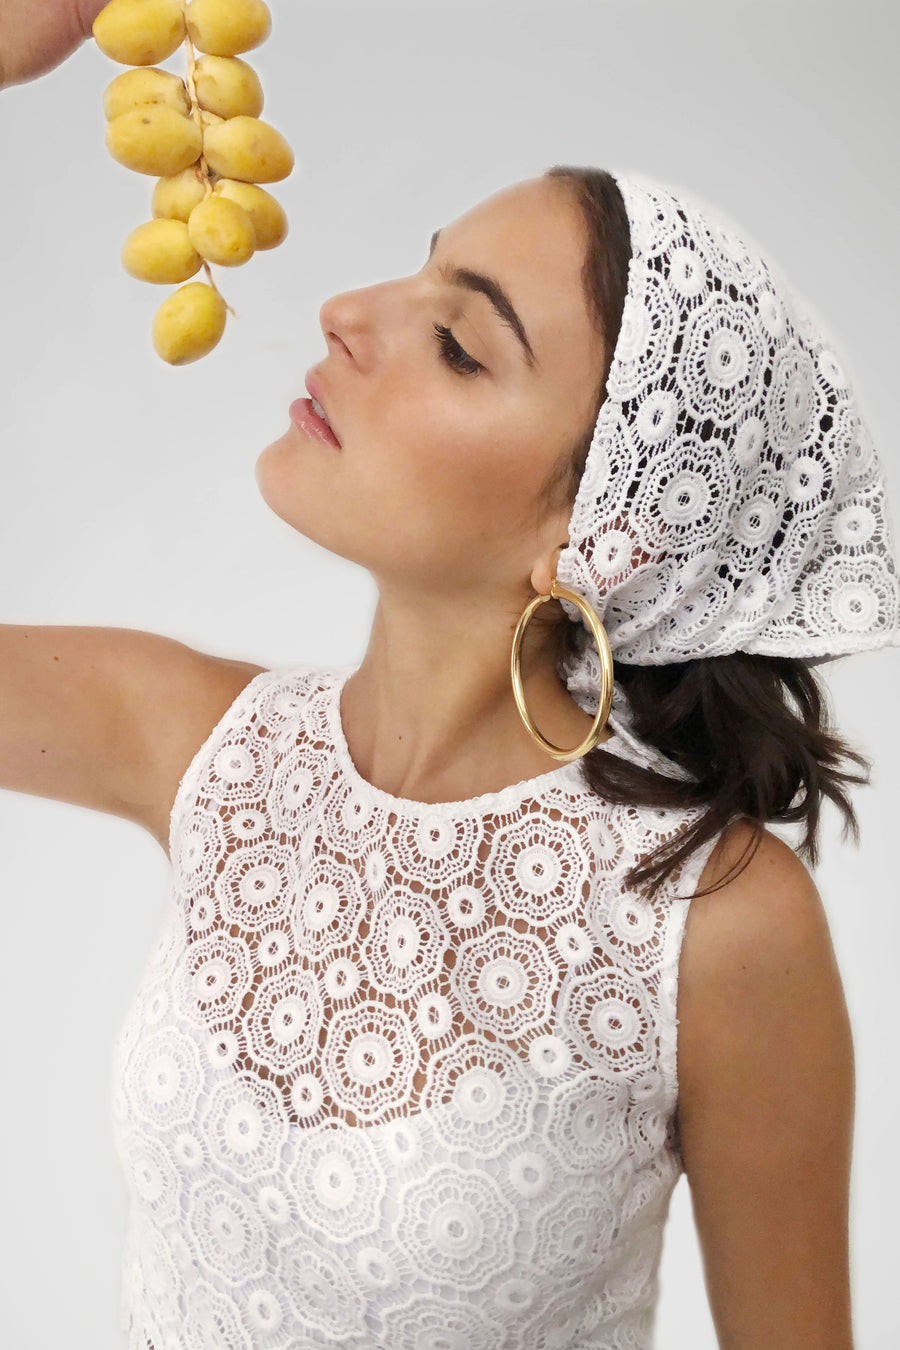 This is a photo of a girl wearing a lace headscarf with gold hoops and matching lace crop top. She is holding fruit above her face.